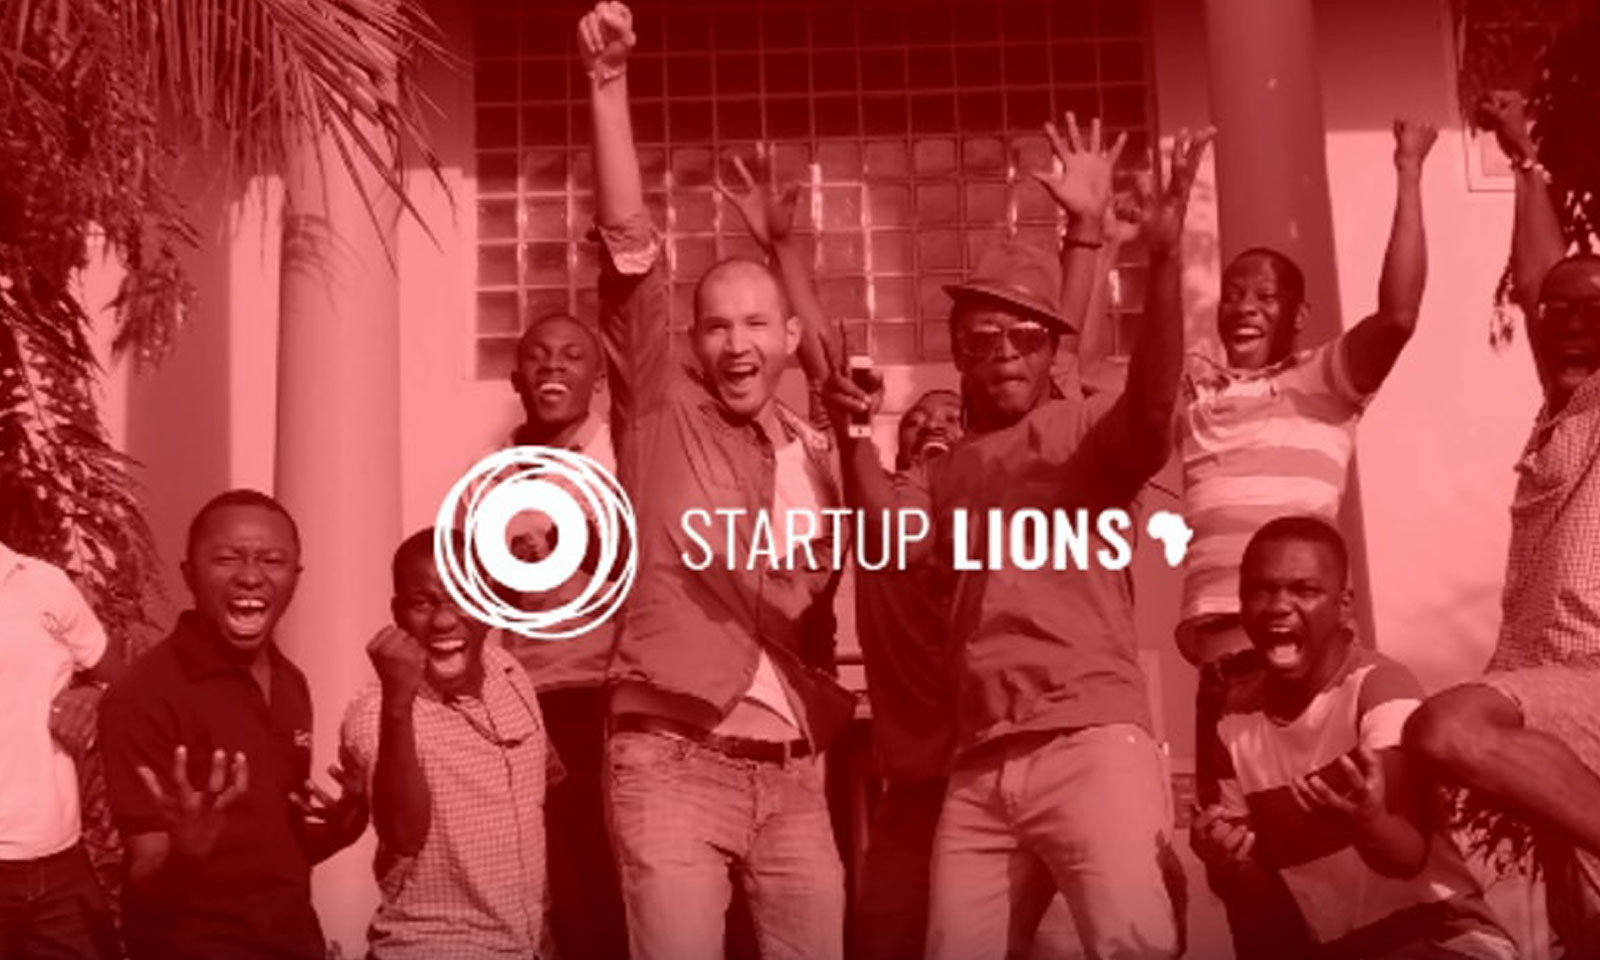 Startup Lions